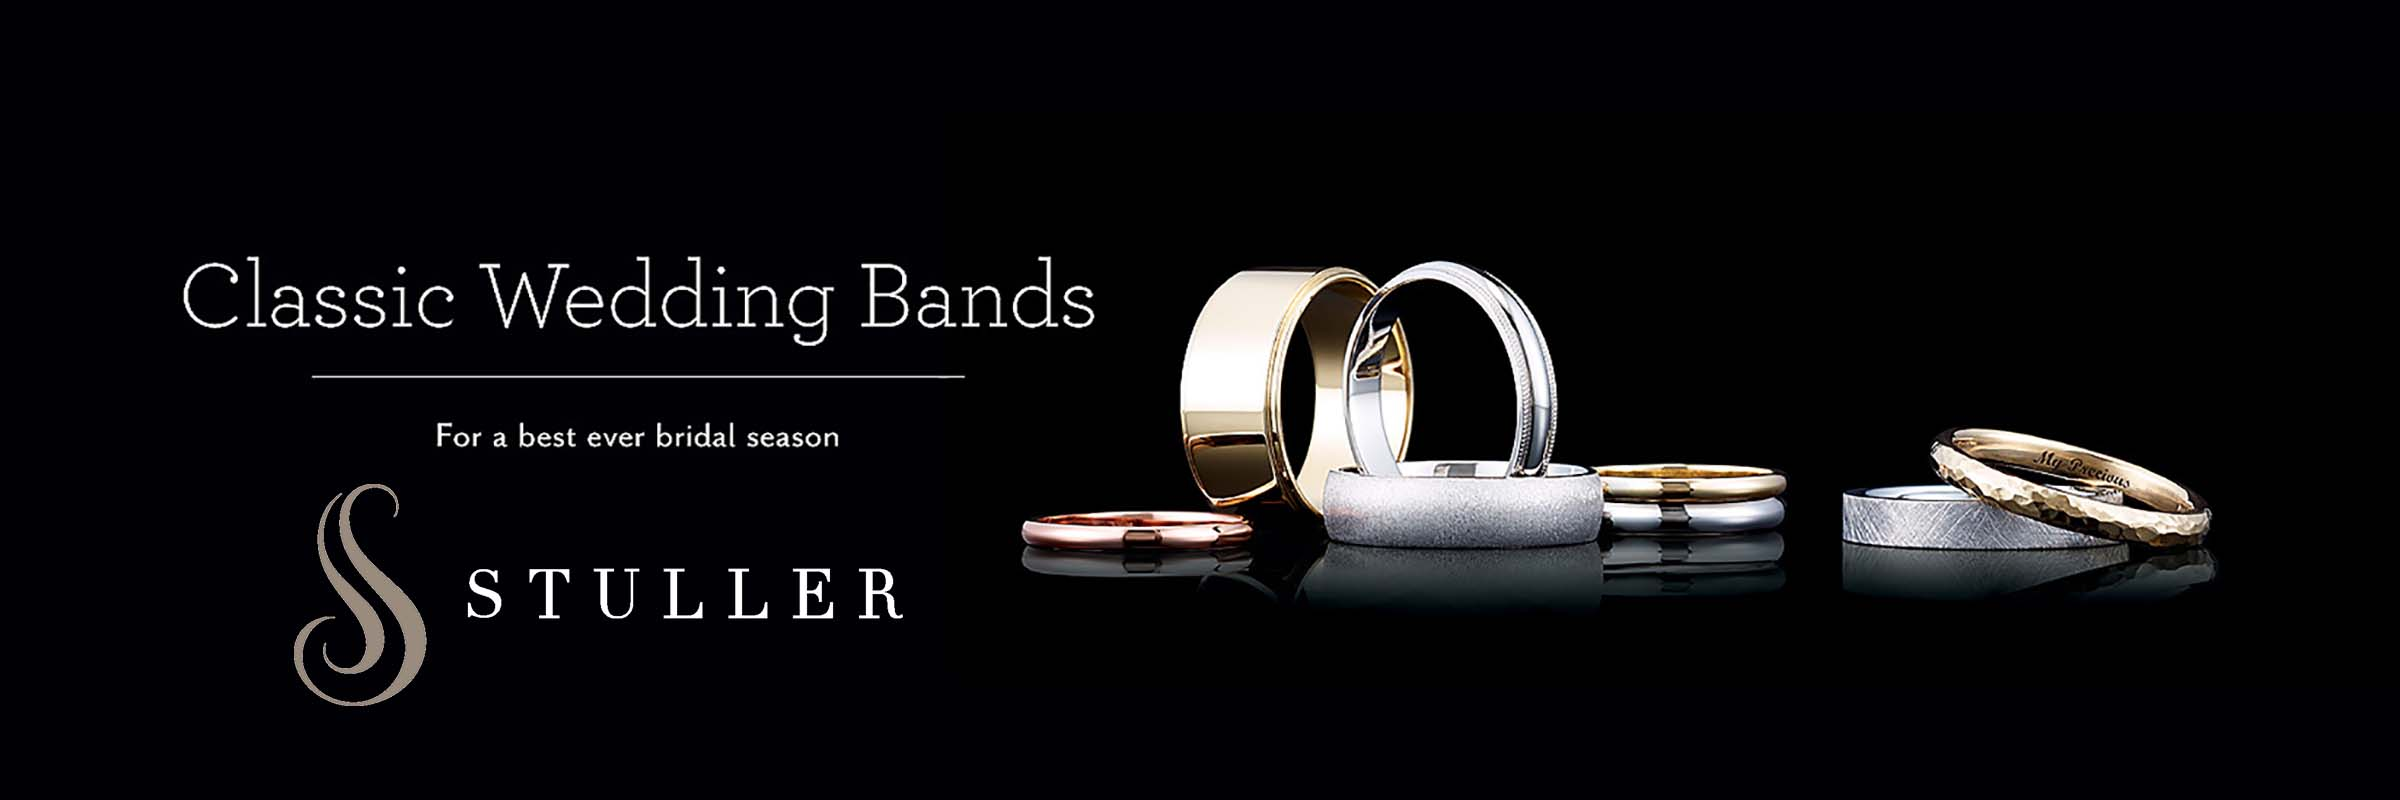 Signature Wedding Bands